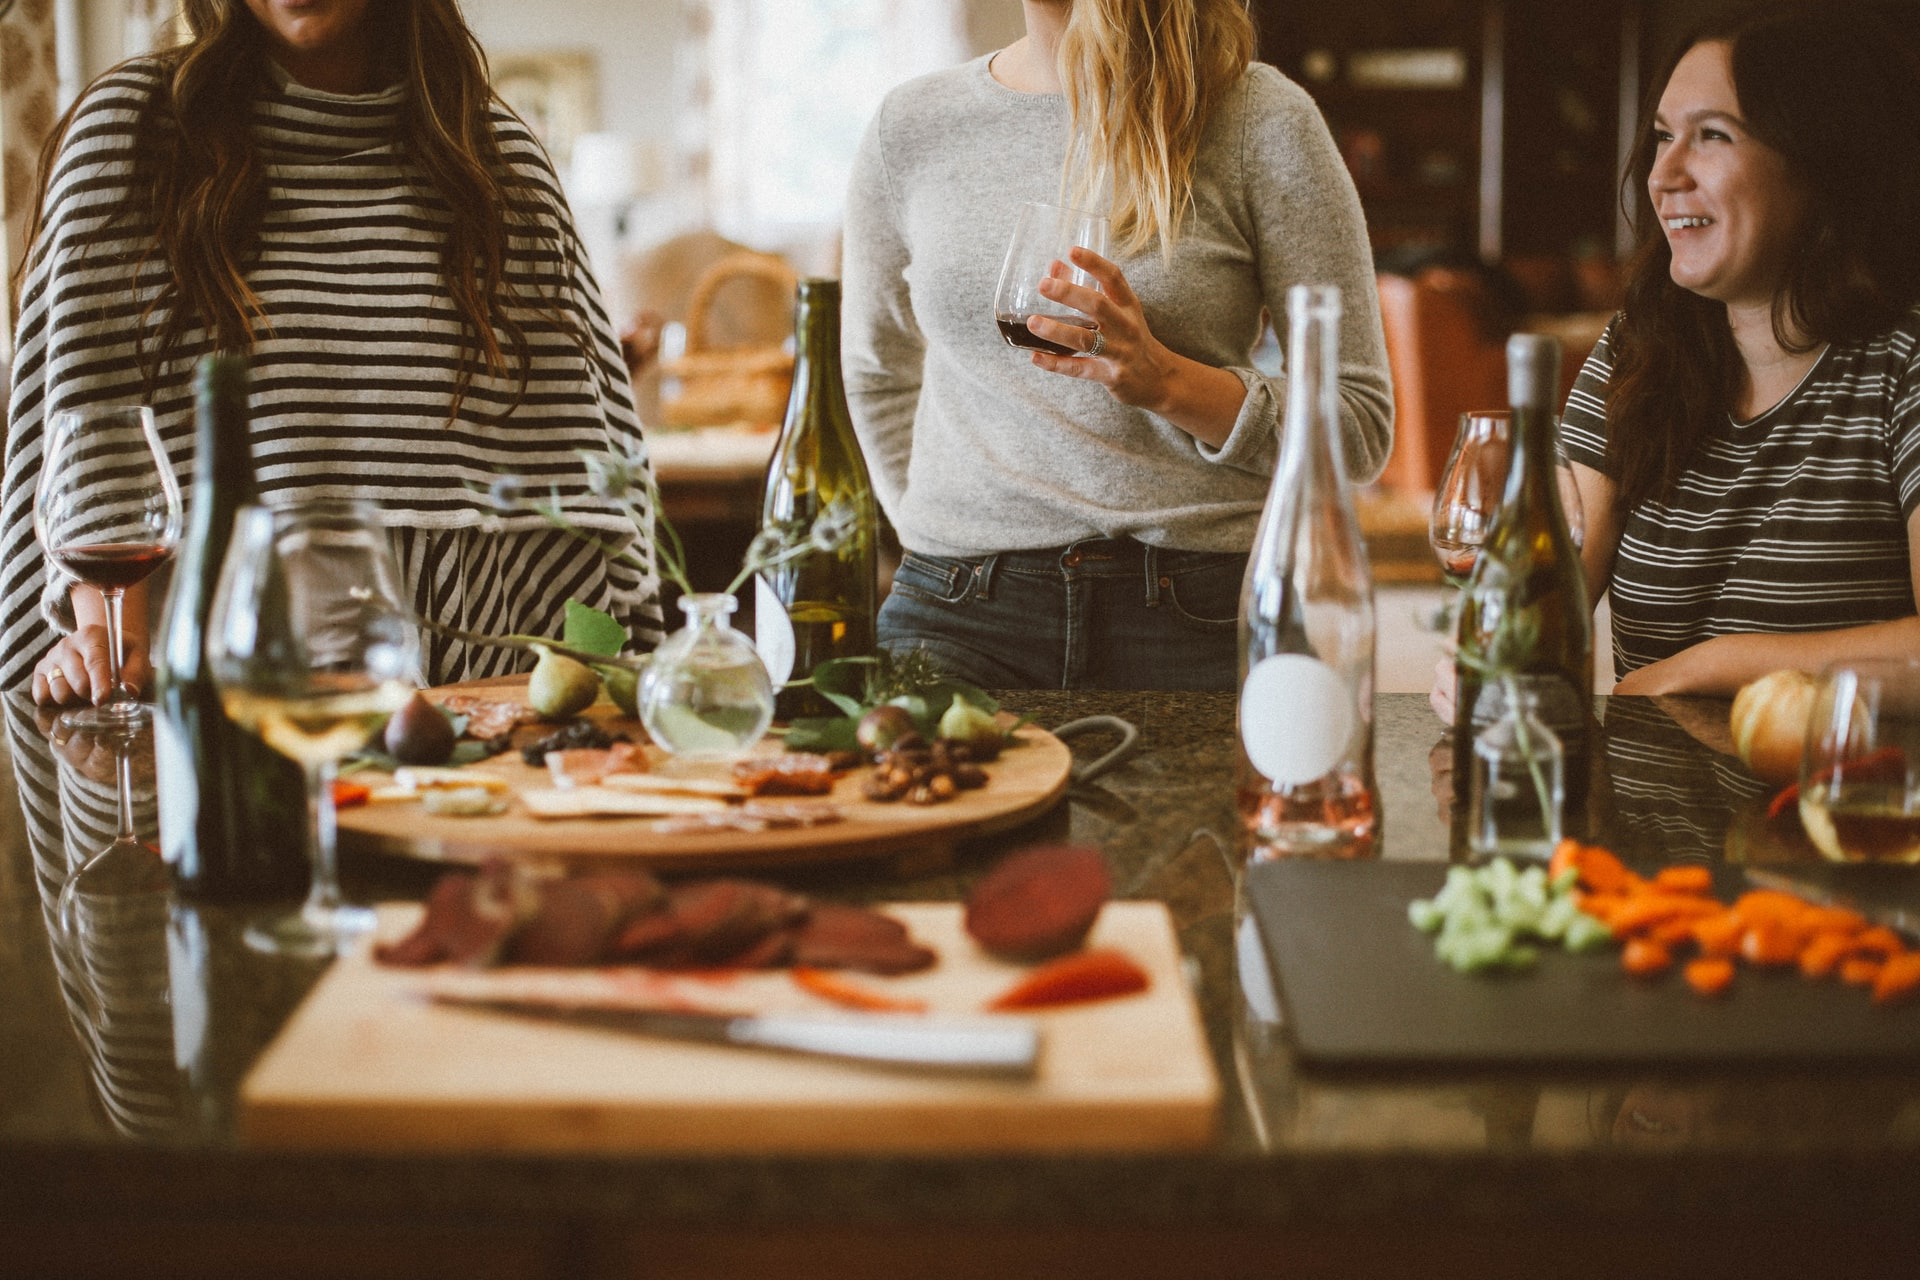 Kiwi renovations: Three ways to party after 10